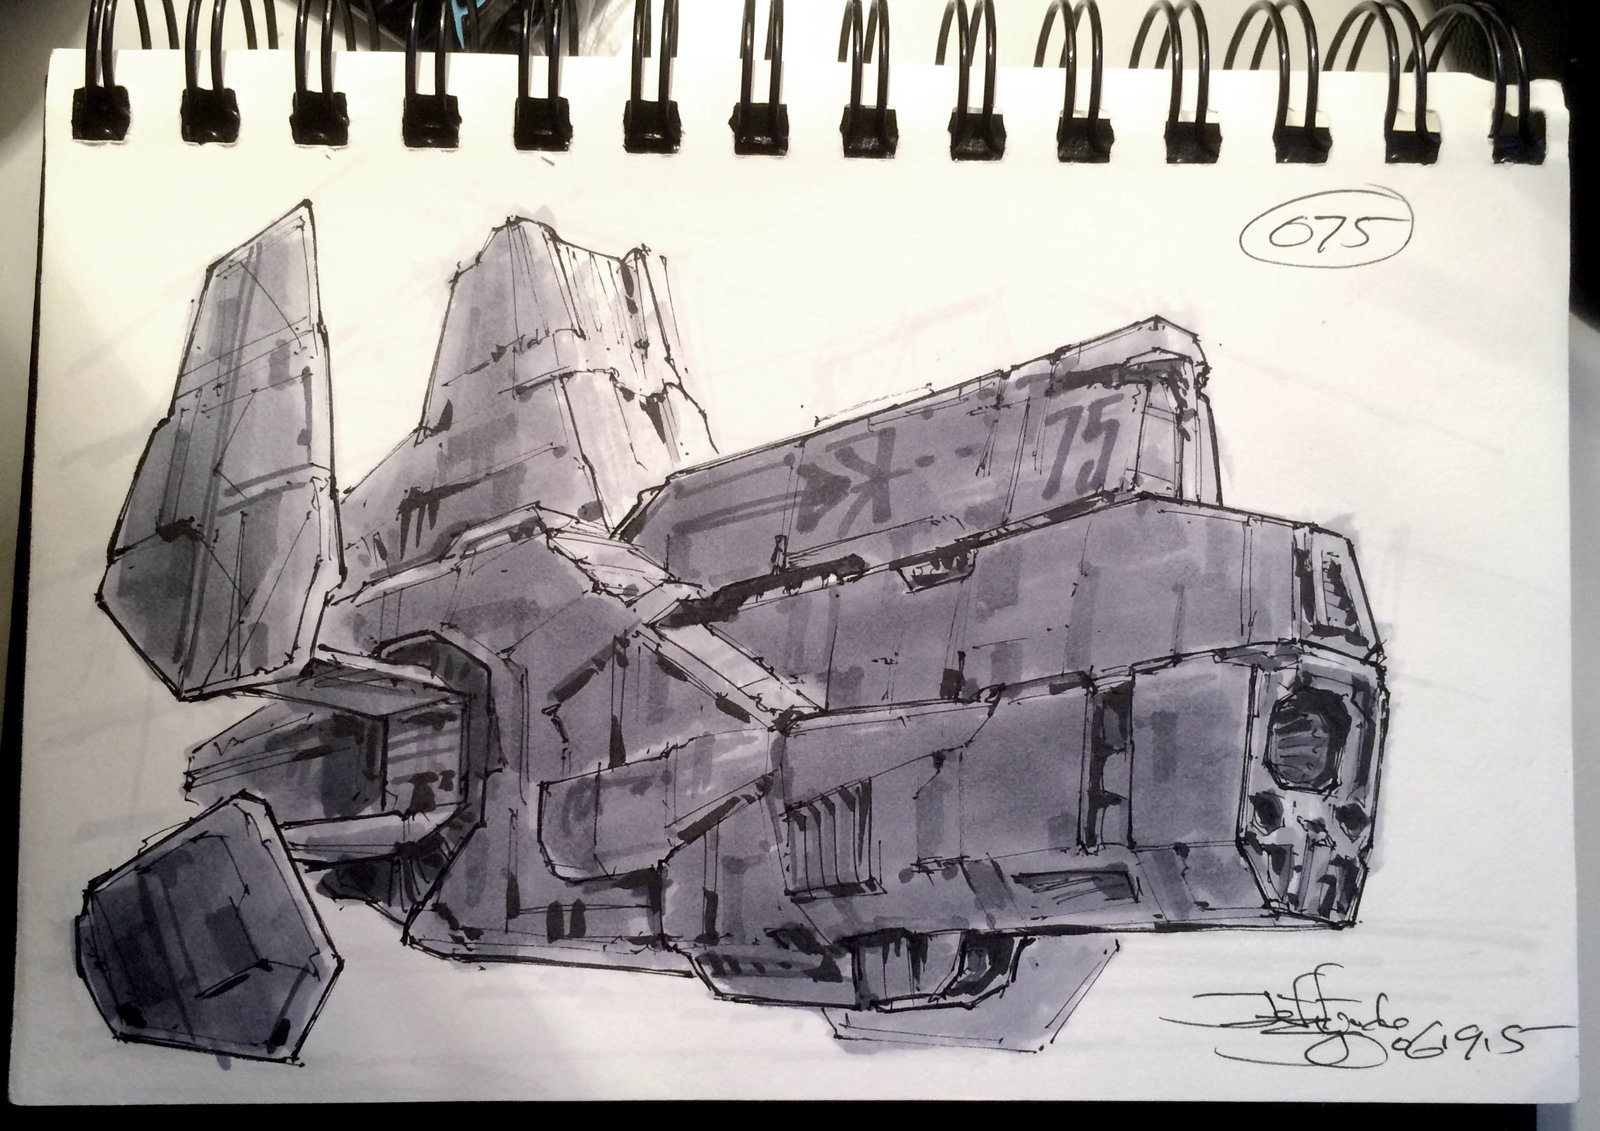 SpaceshipADay 075